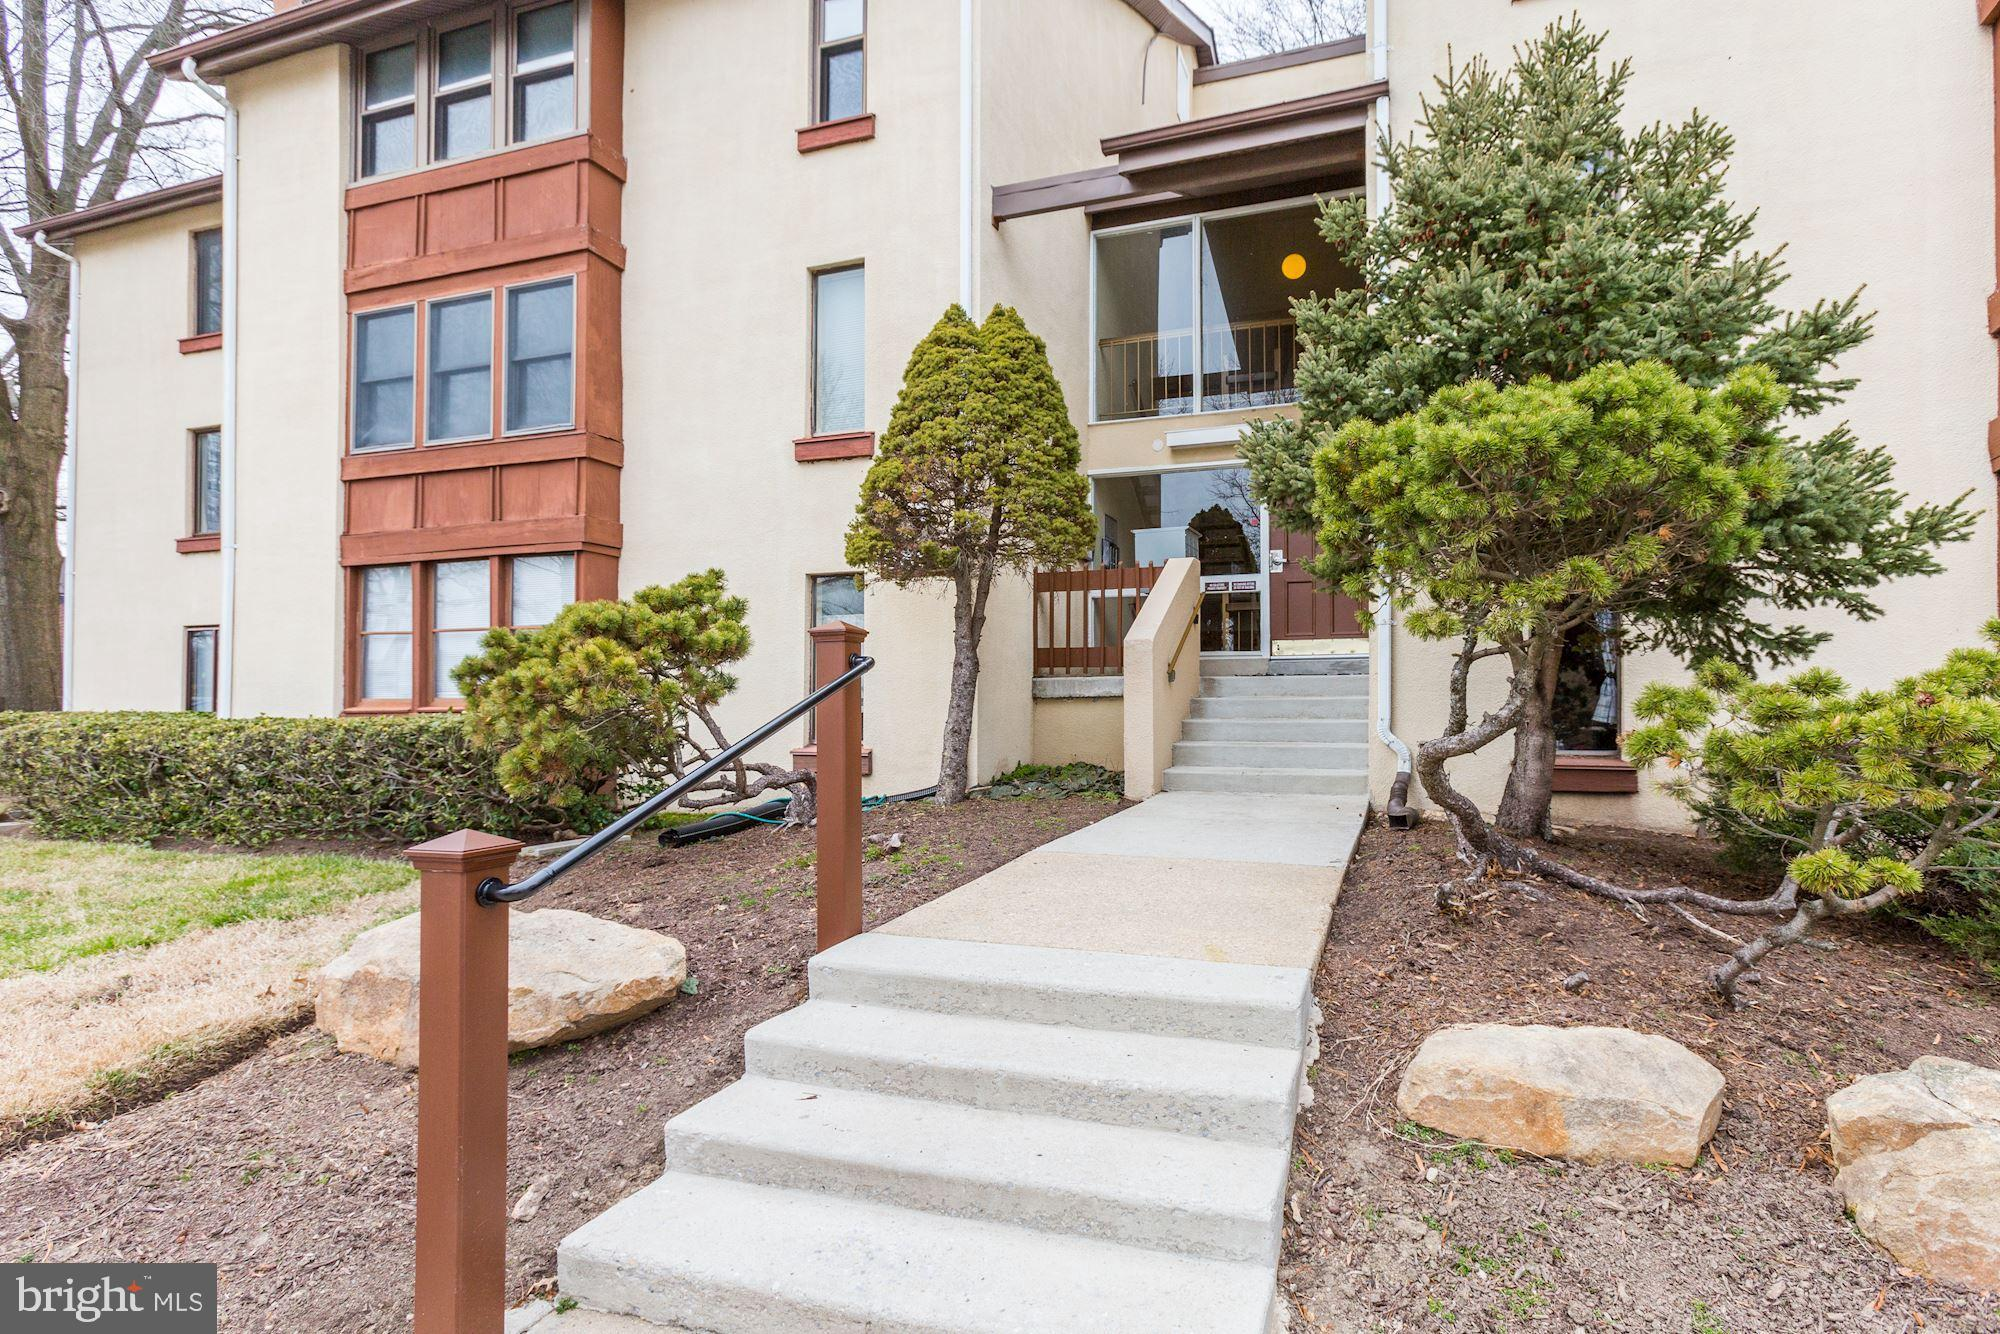 1 Bedroom unit in the charming community of Shadow Oaks!  There's lots of parking out front and the